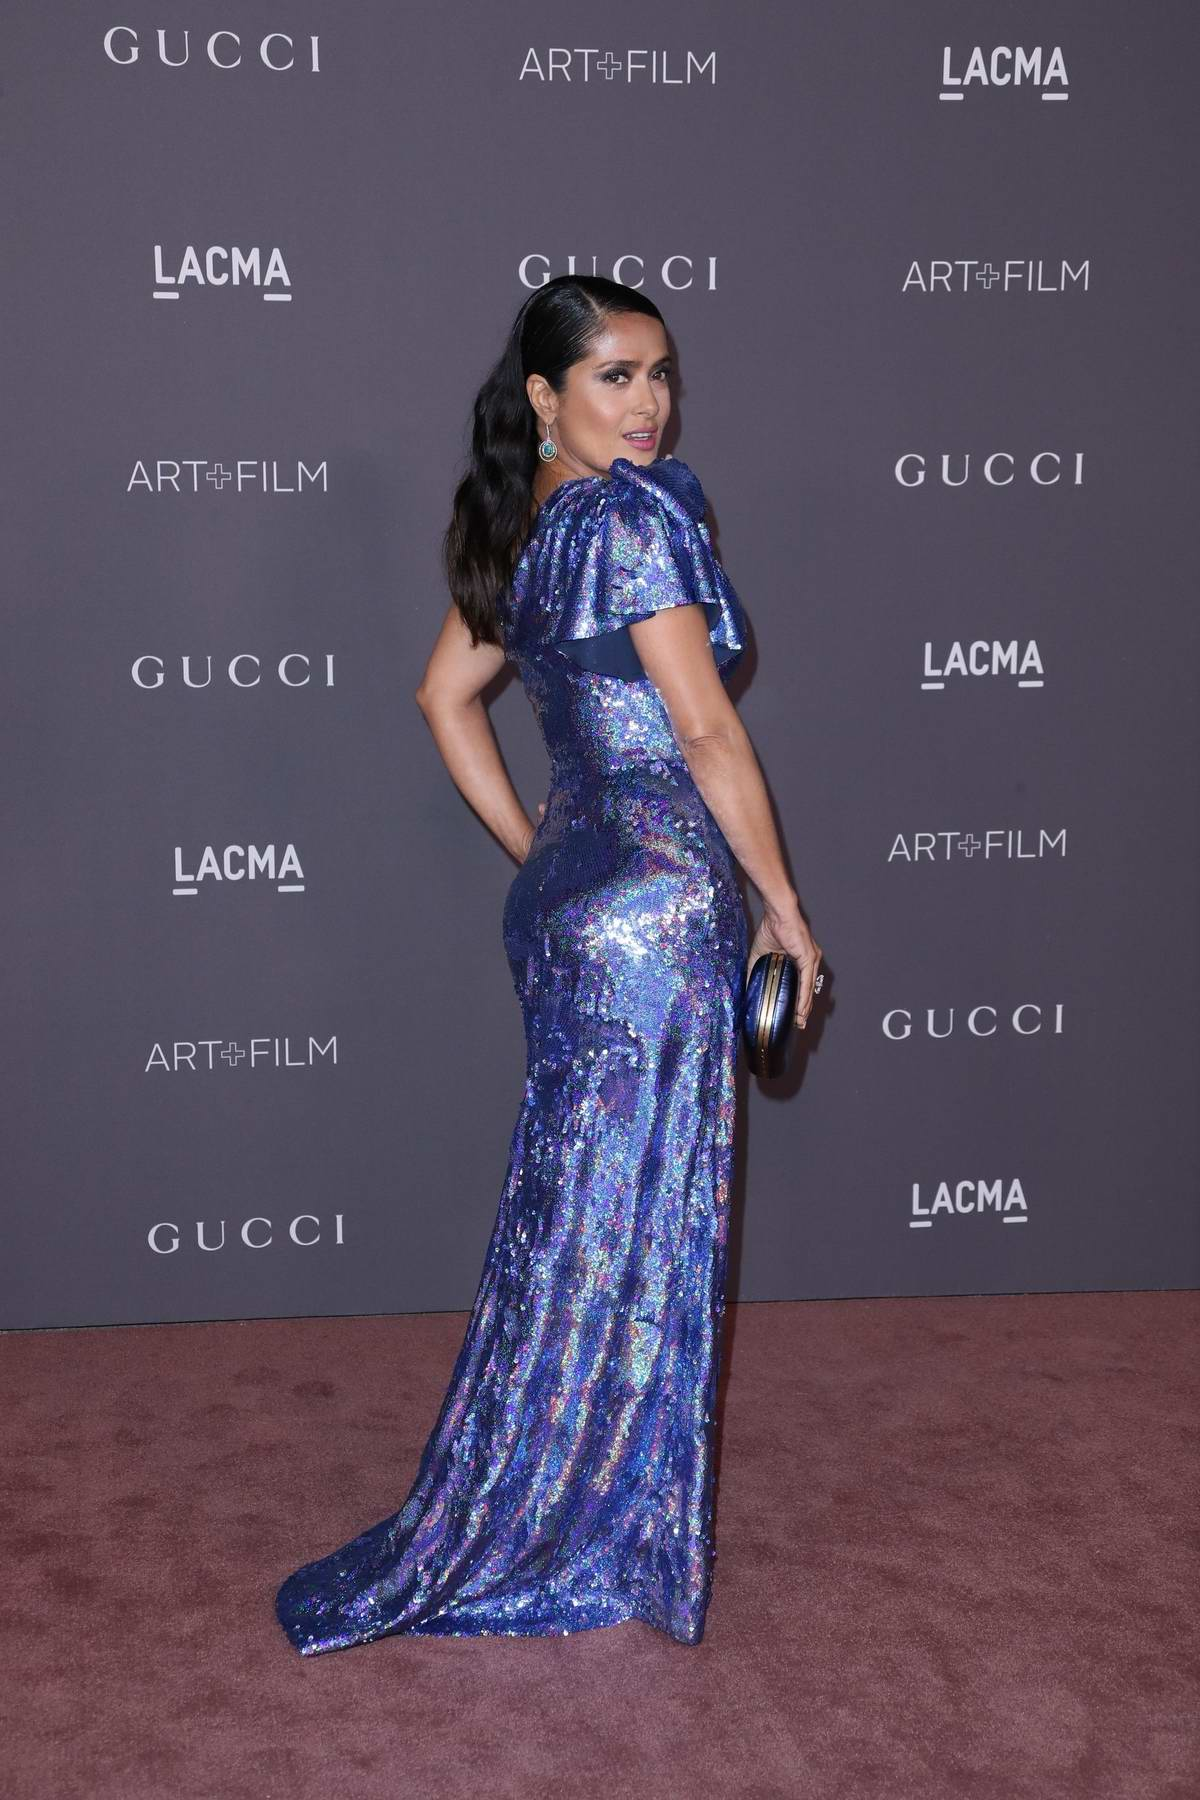 Salma Hayek at the LACMA Art and Film gala in Los Angeles